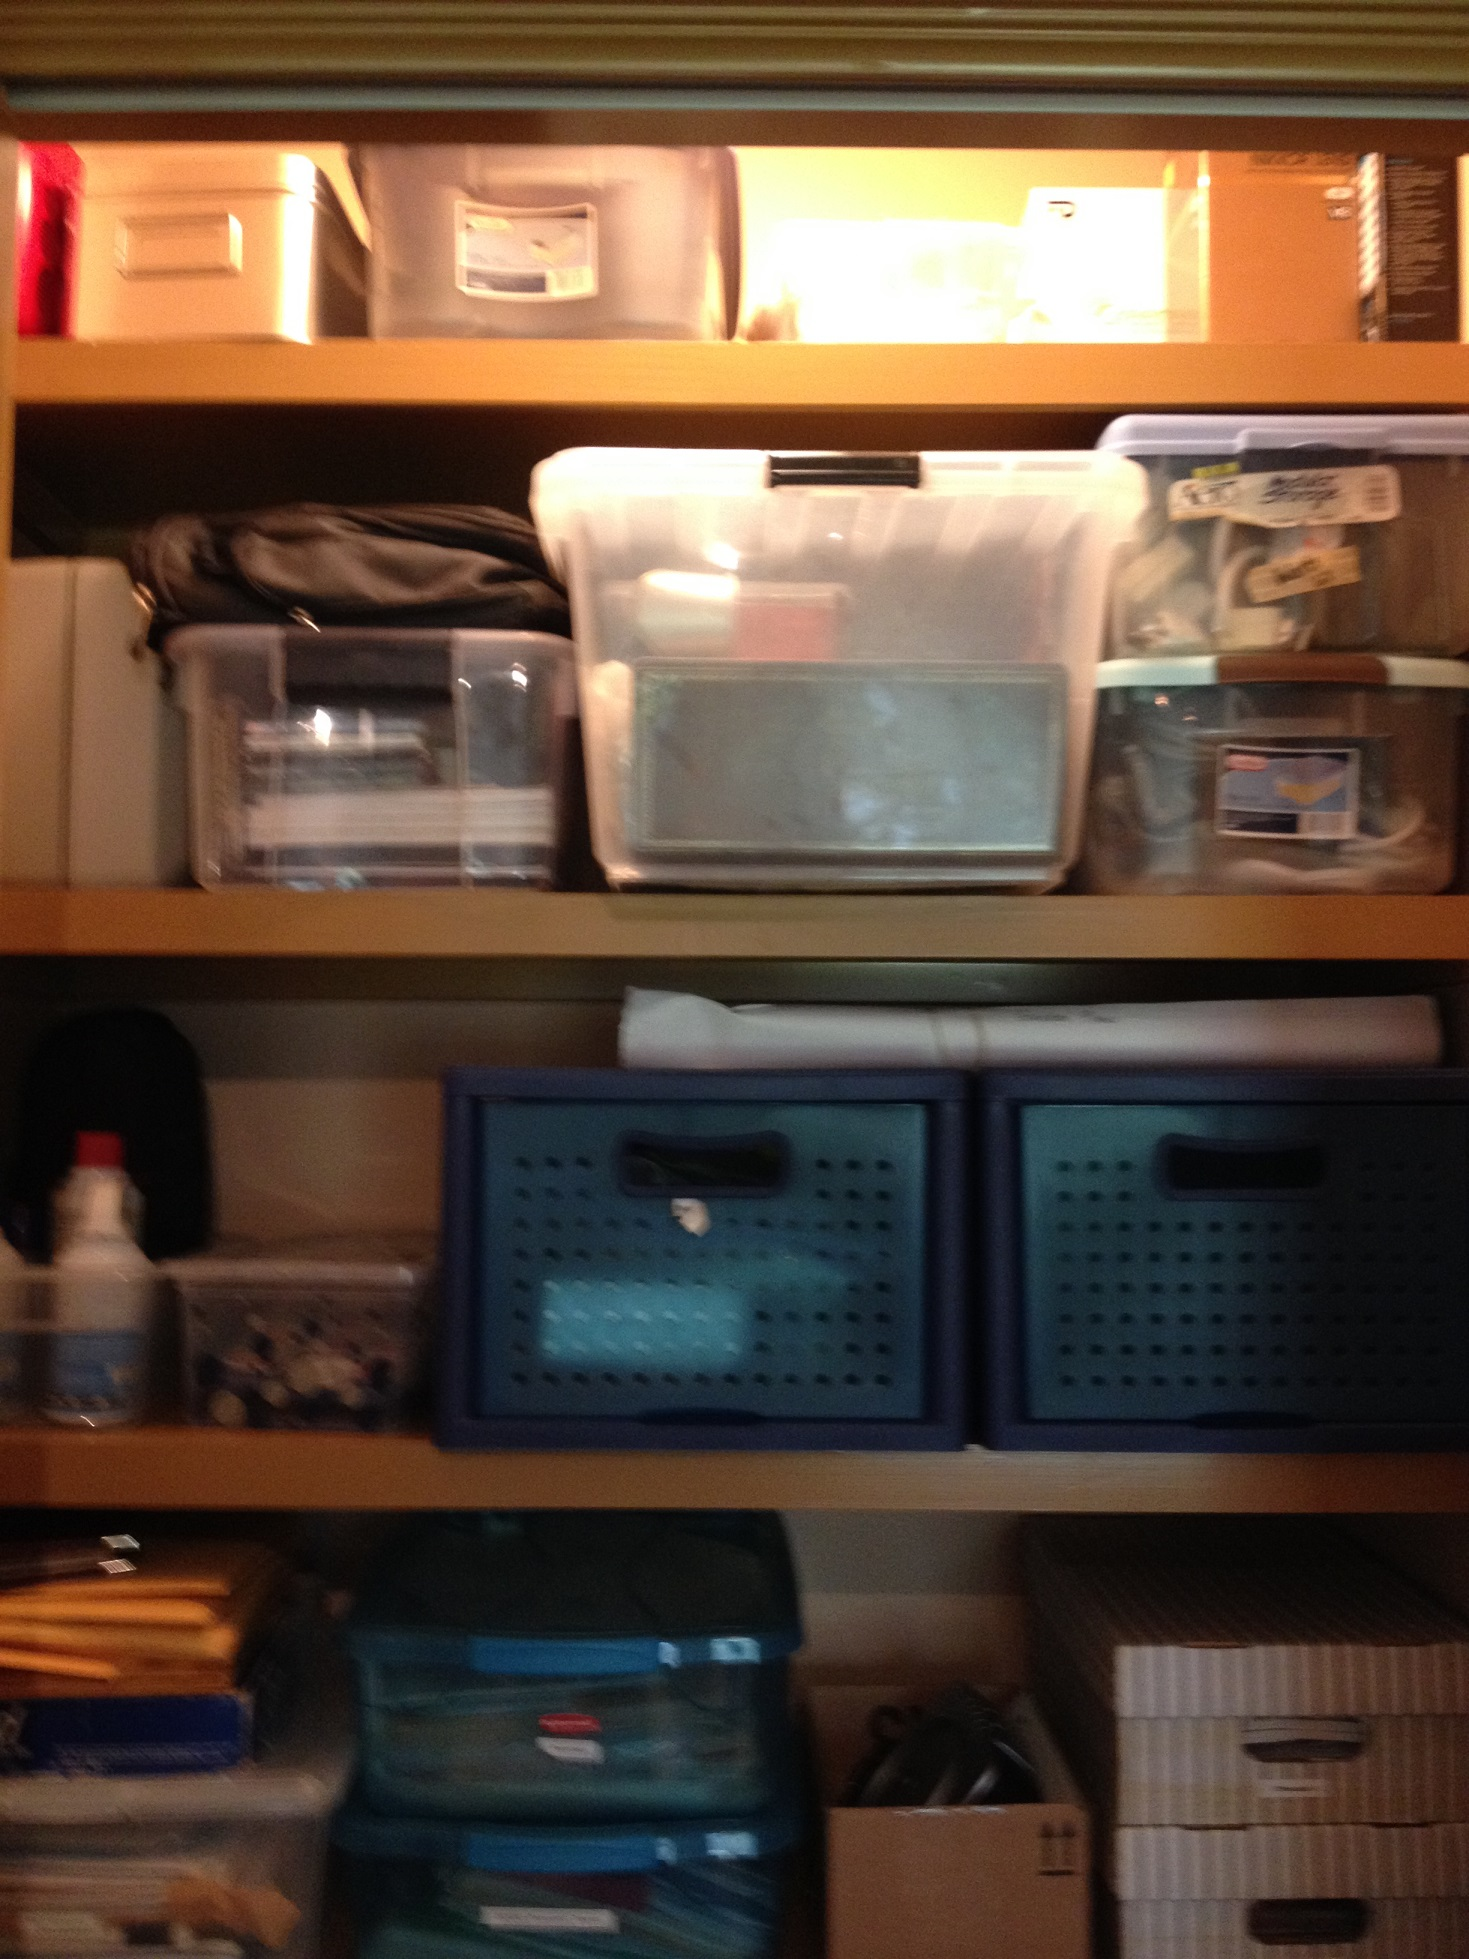 office closet organizers. purging outdated technology in a home office closet organized top view of organizers